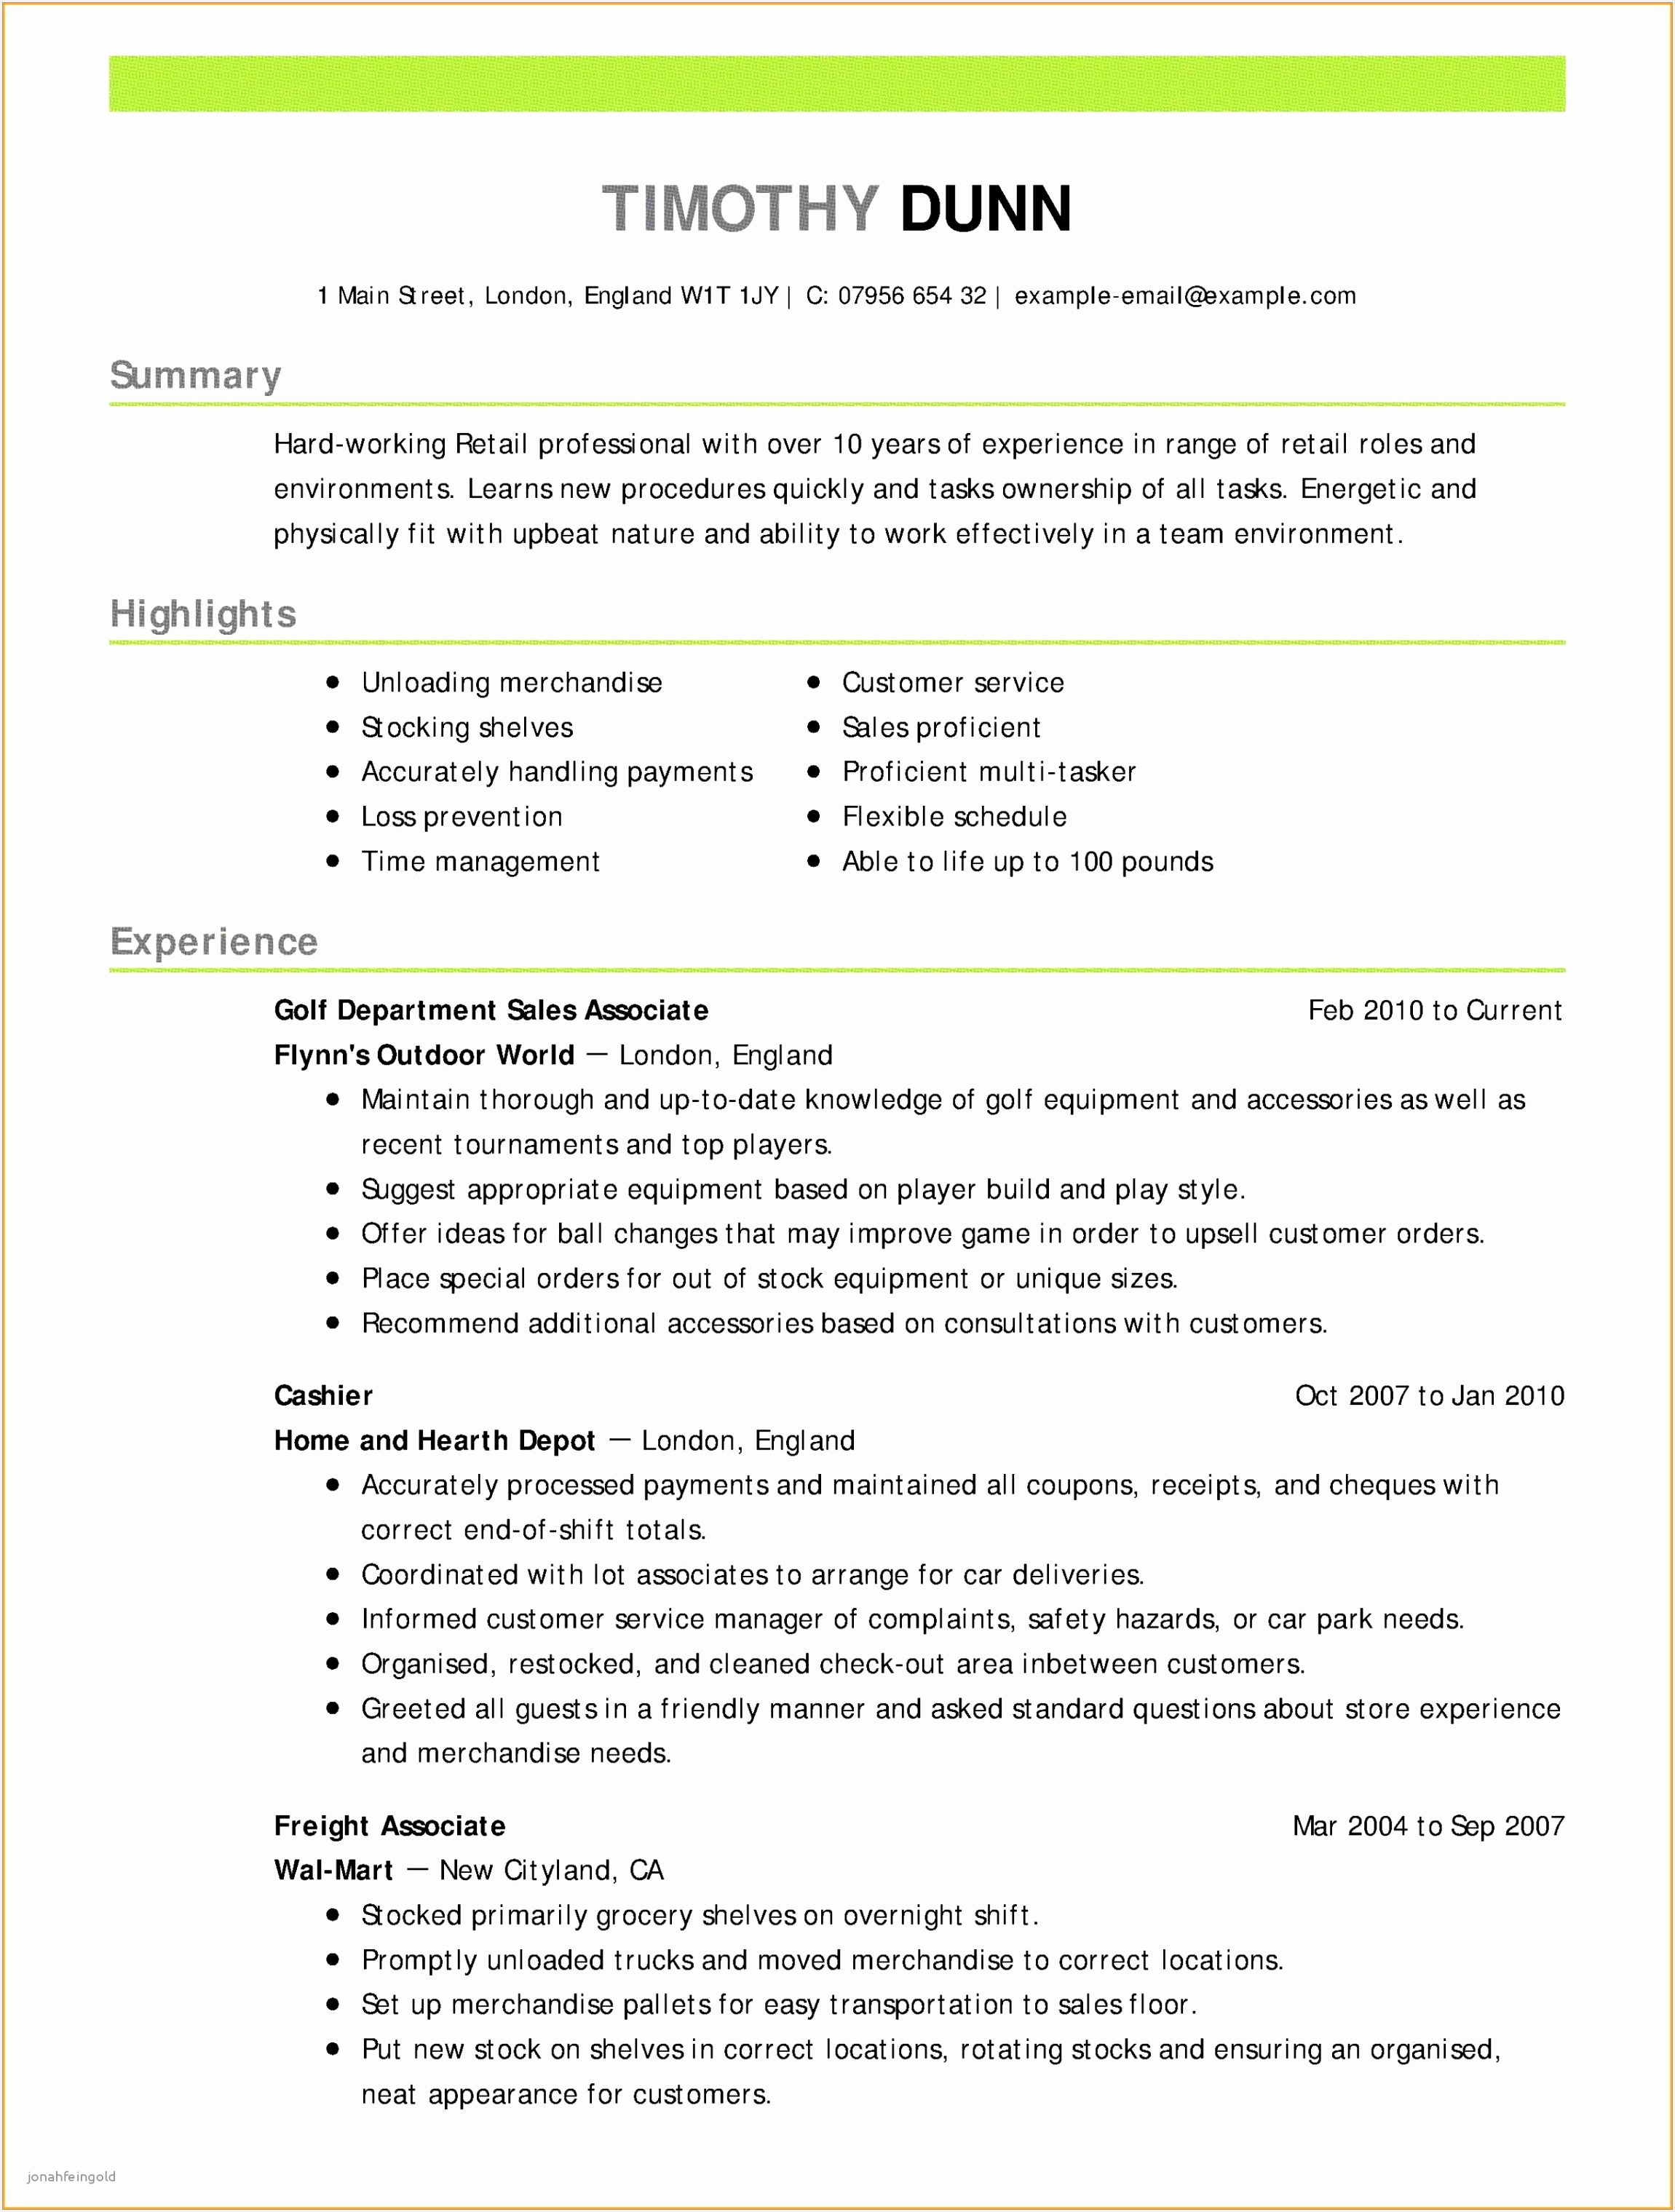 Examples Resumes for Jobs Favnh Fresh It Resume Job Descriptions Examples New It Resume Skills Unique30392301